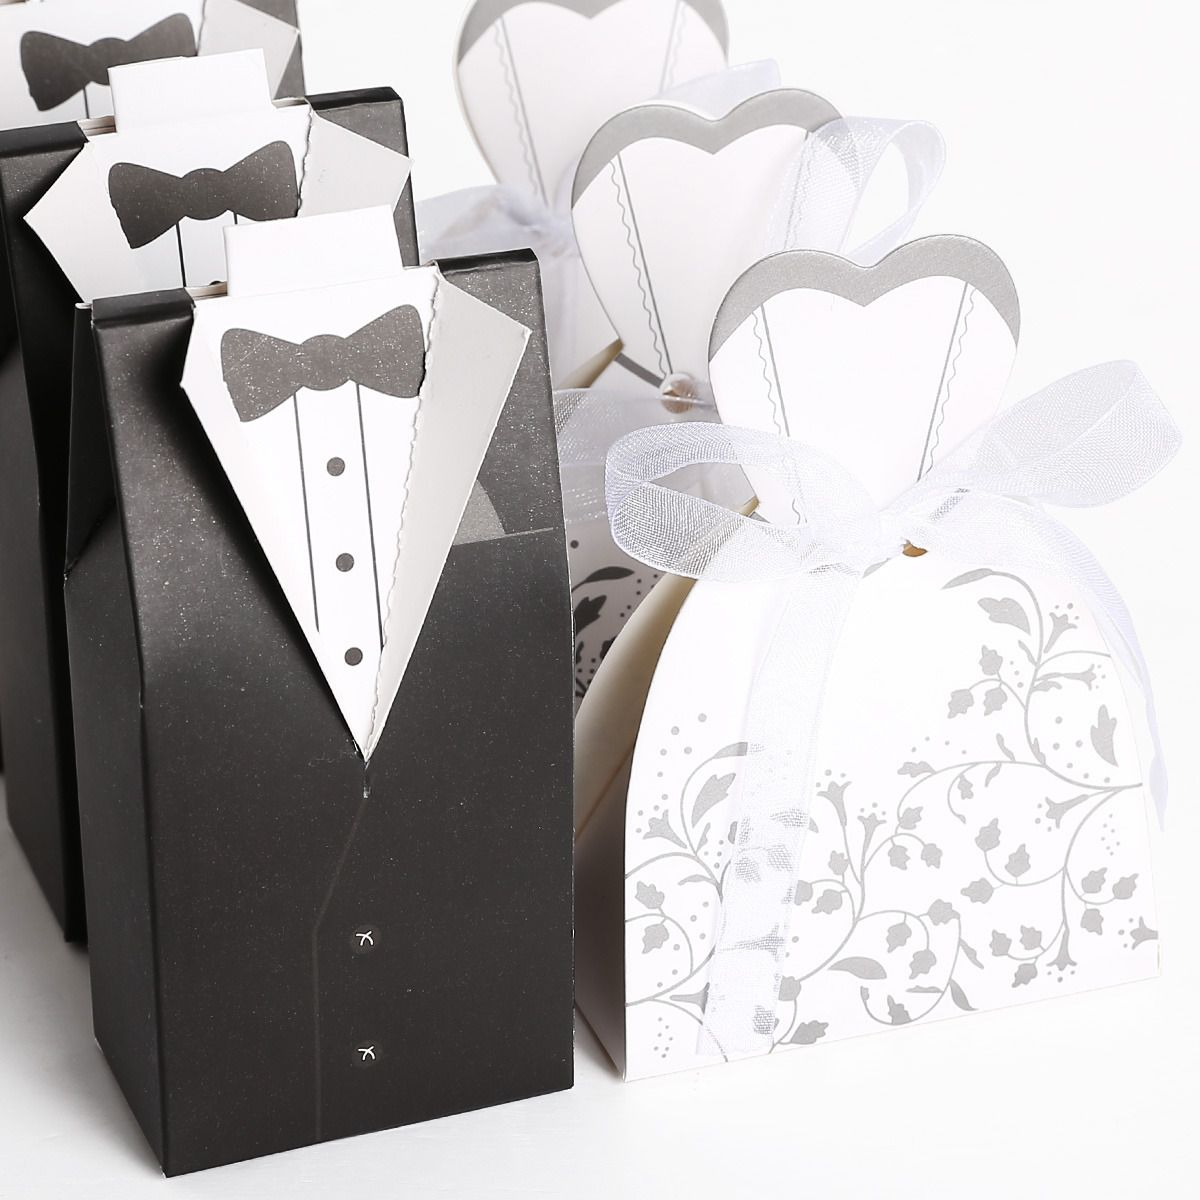 drages boites mariage homme femme contenant dragescontenant dragees mariage mariage dcoration et tables - Boite Dragee Mariage